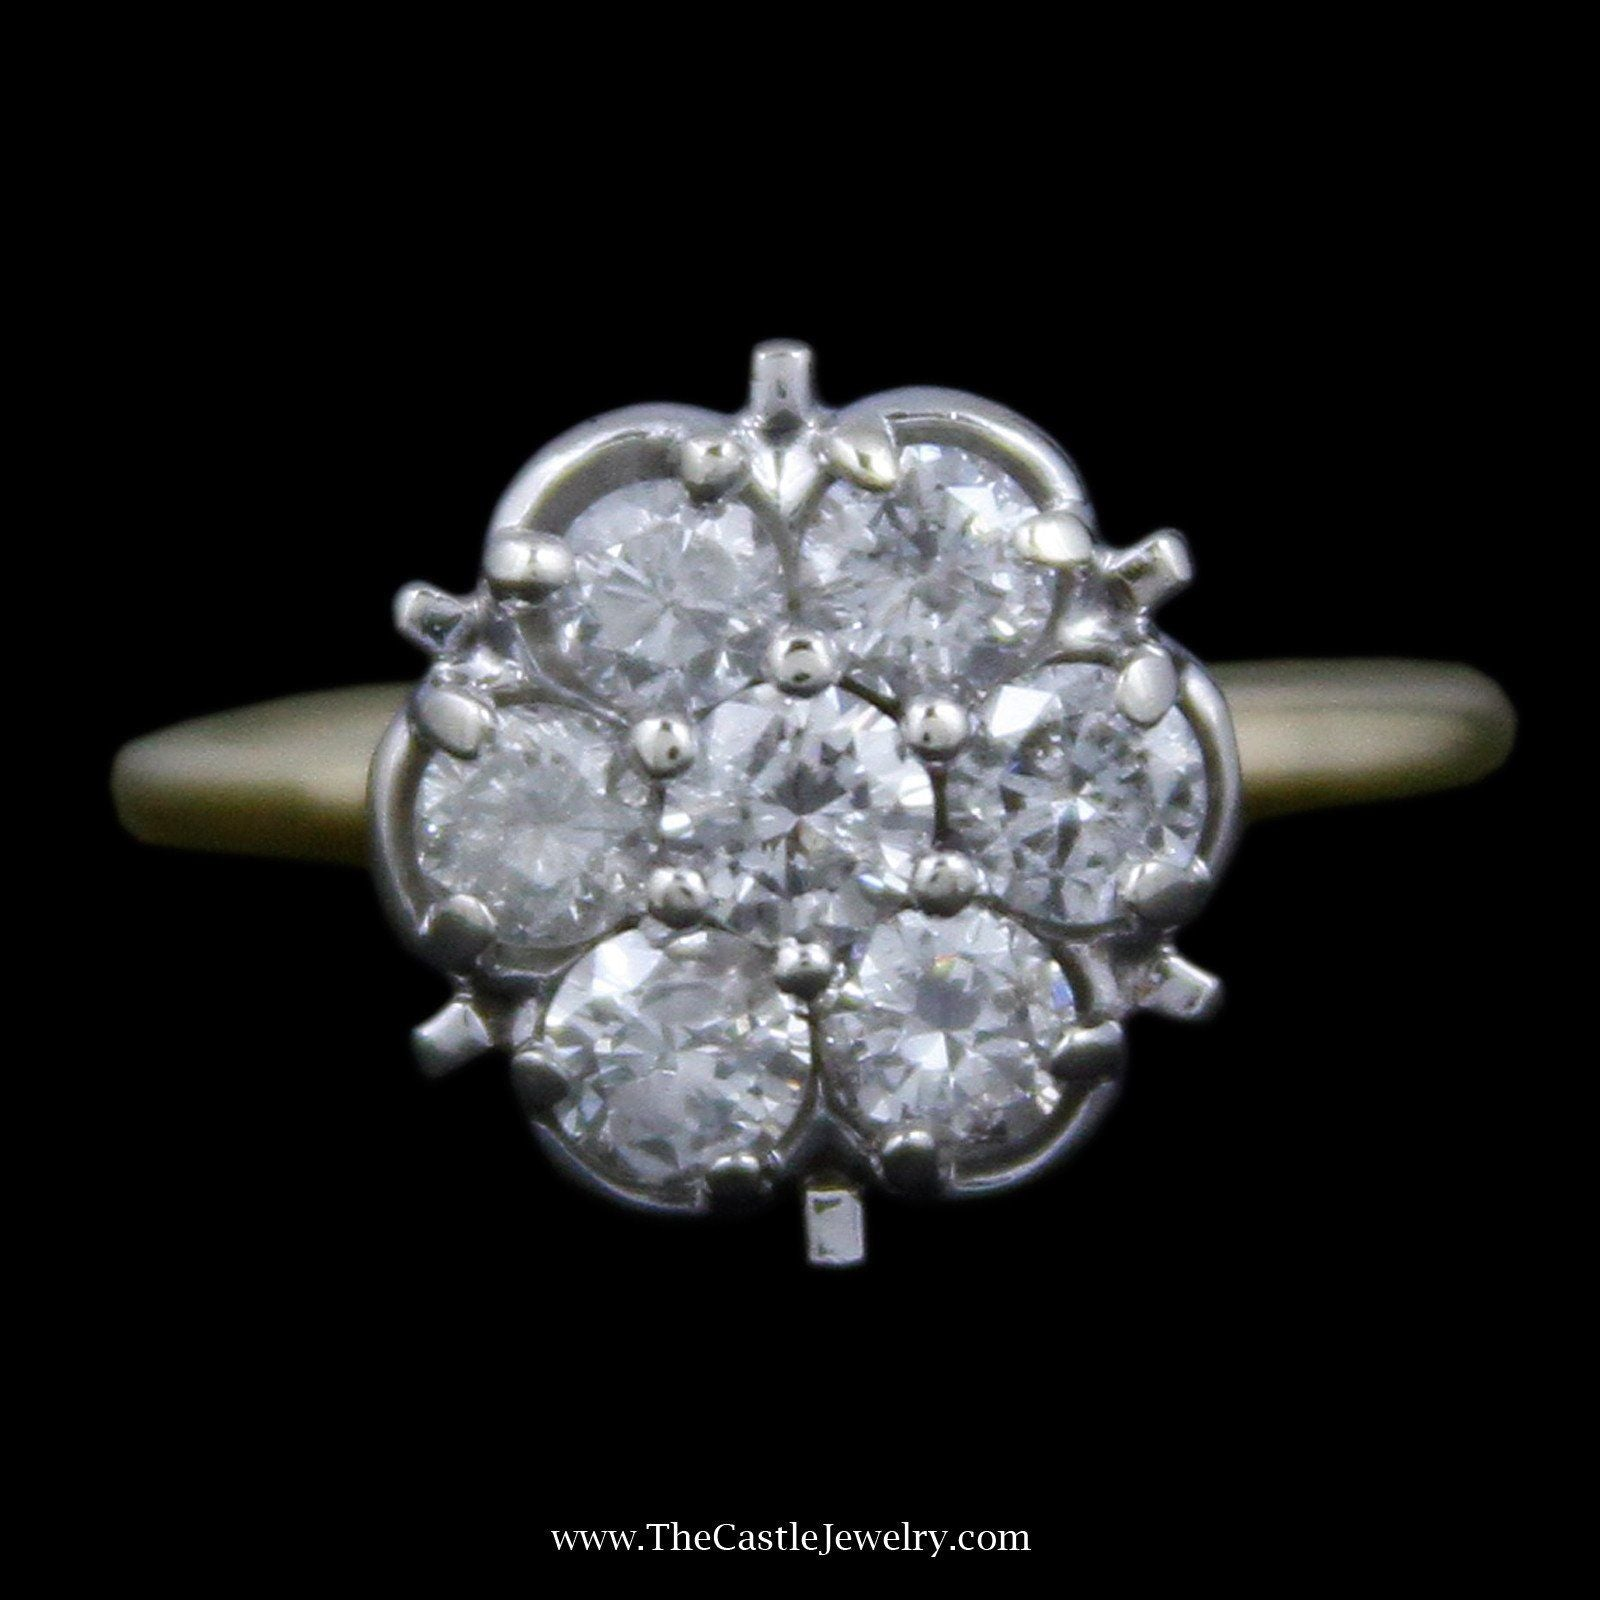 Gorgeous Round Diamond Cluster Ring with 7 Round Brilliant Cut Diamonds-0